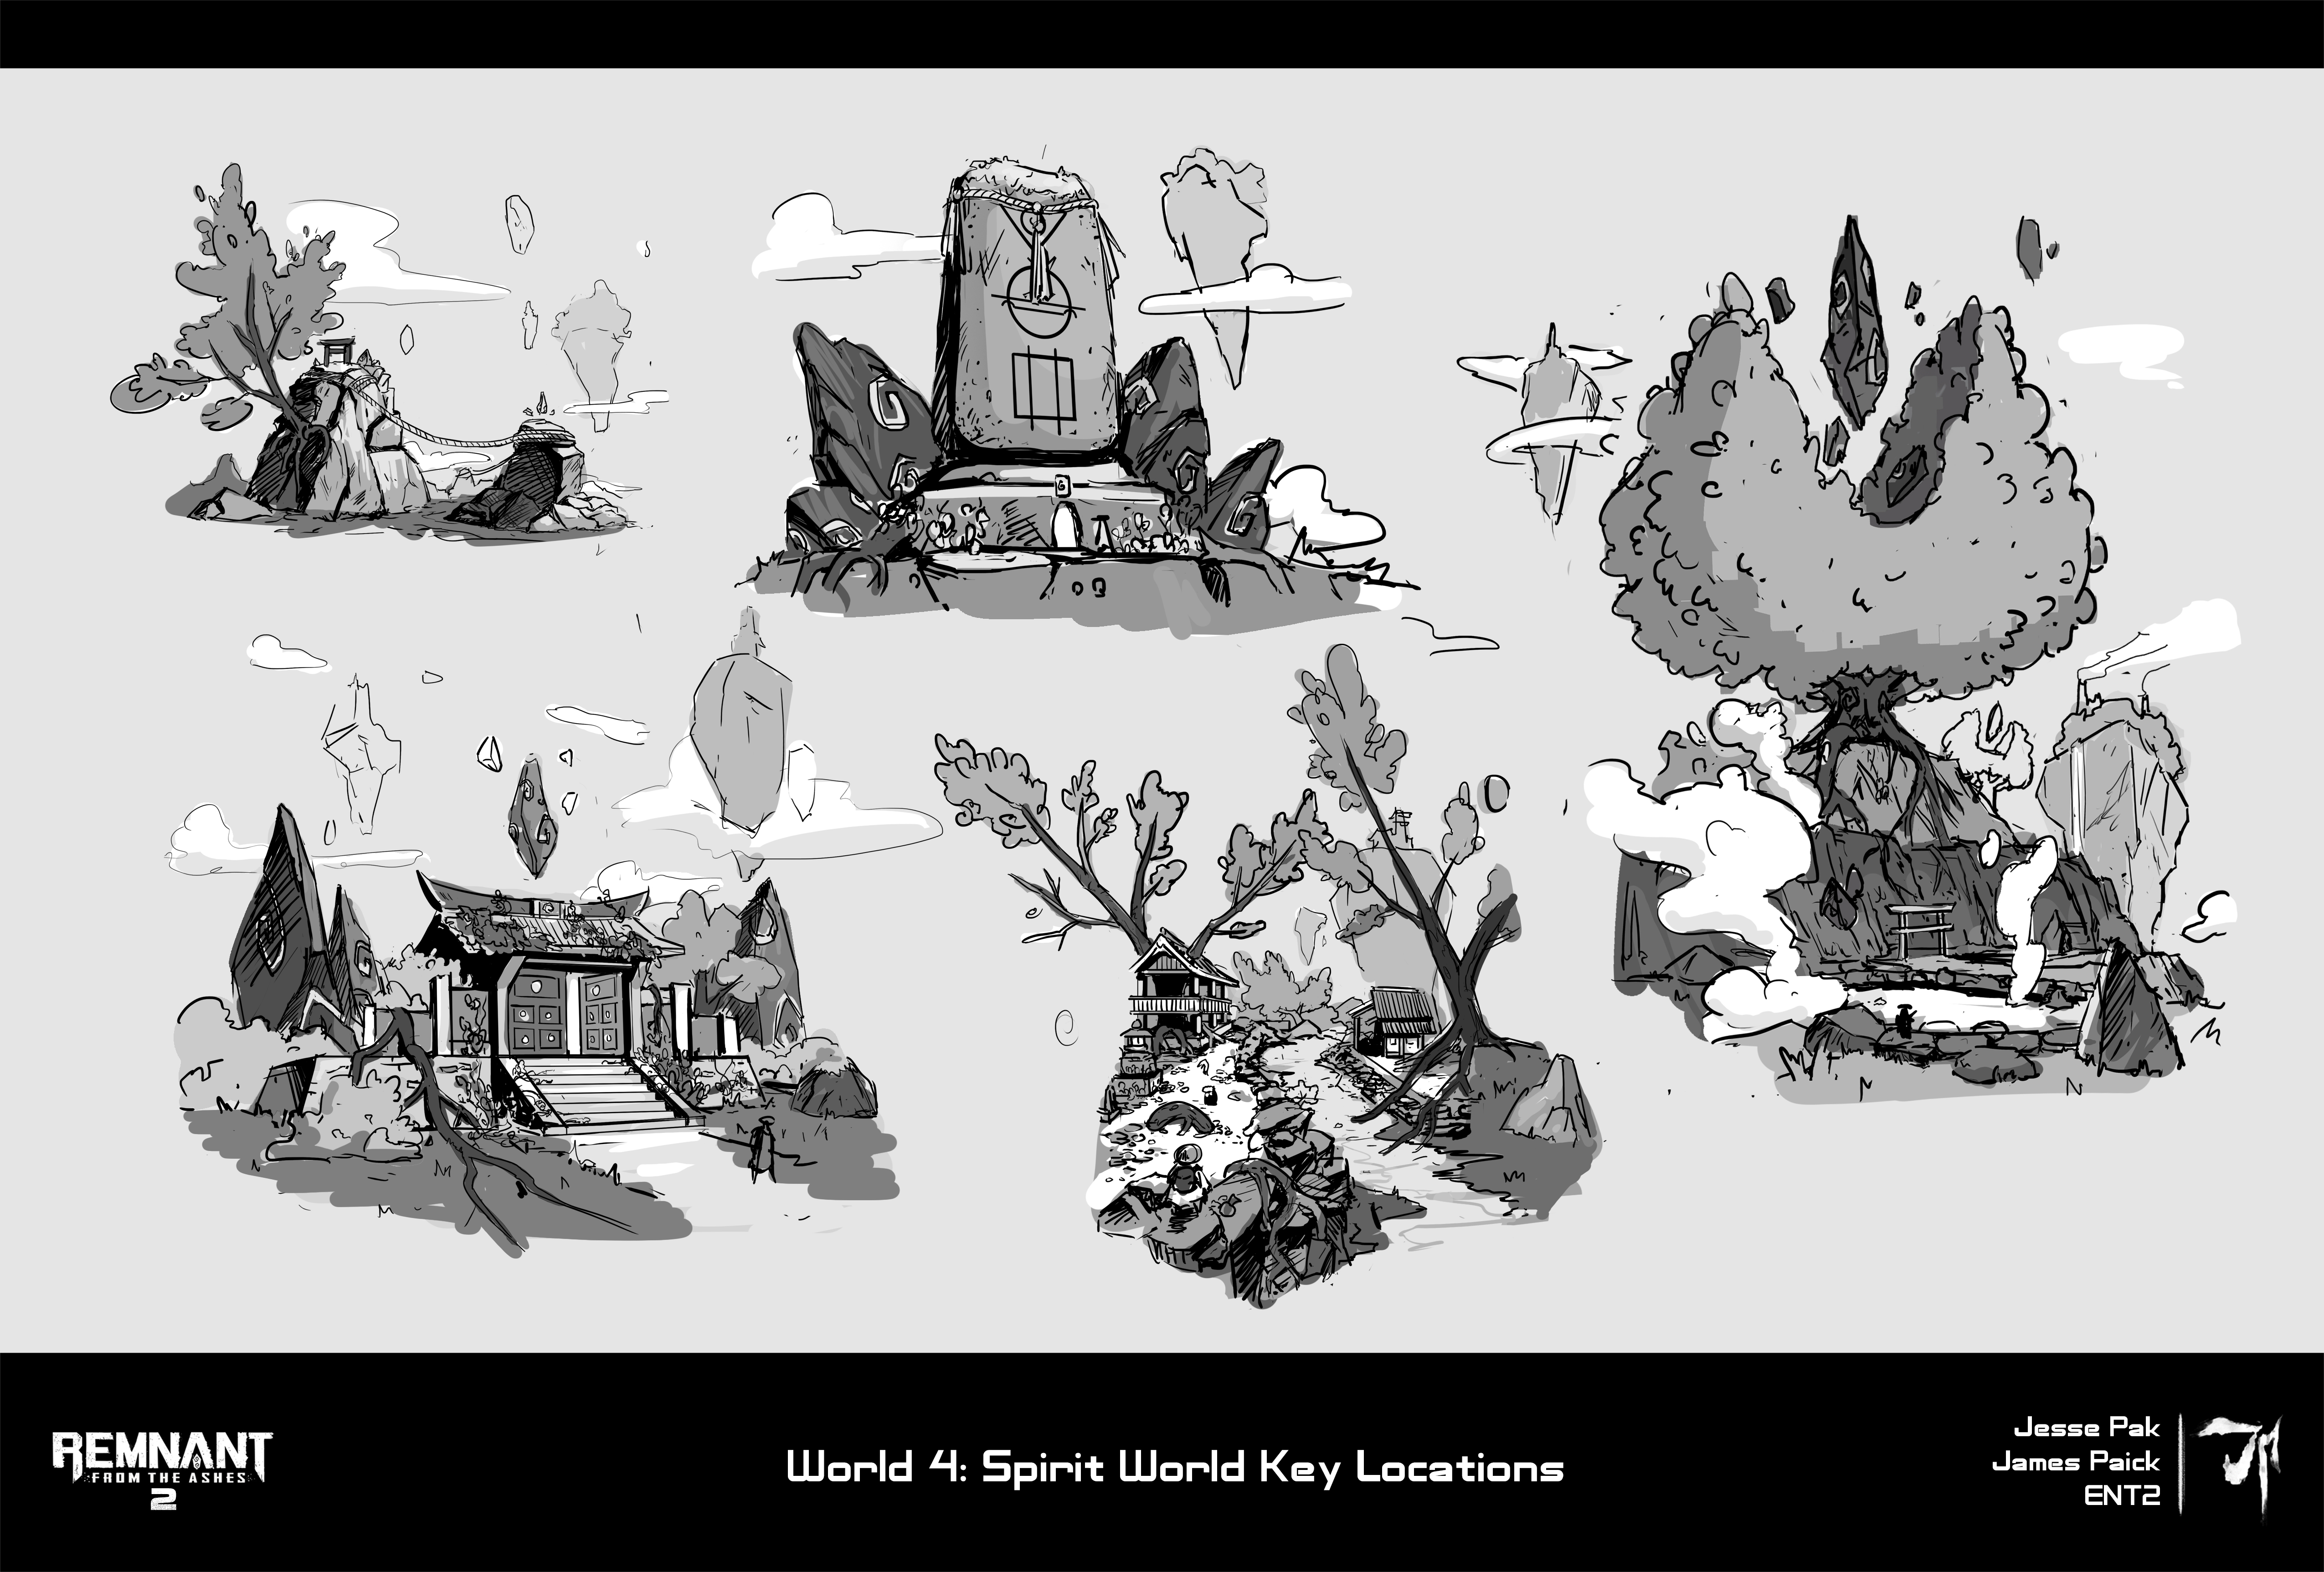 9. World 4 Location Sketches